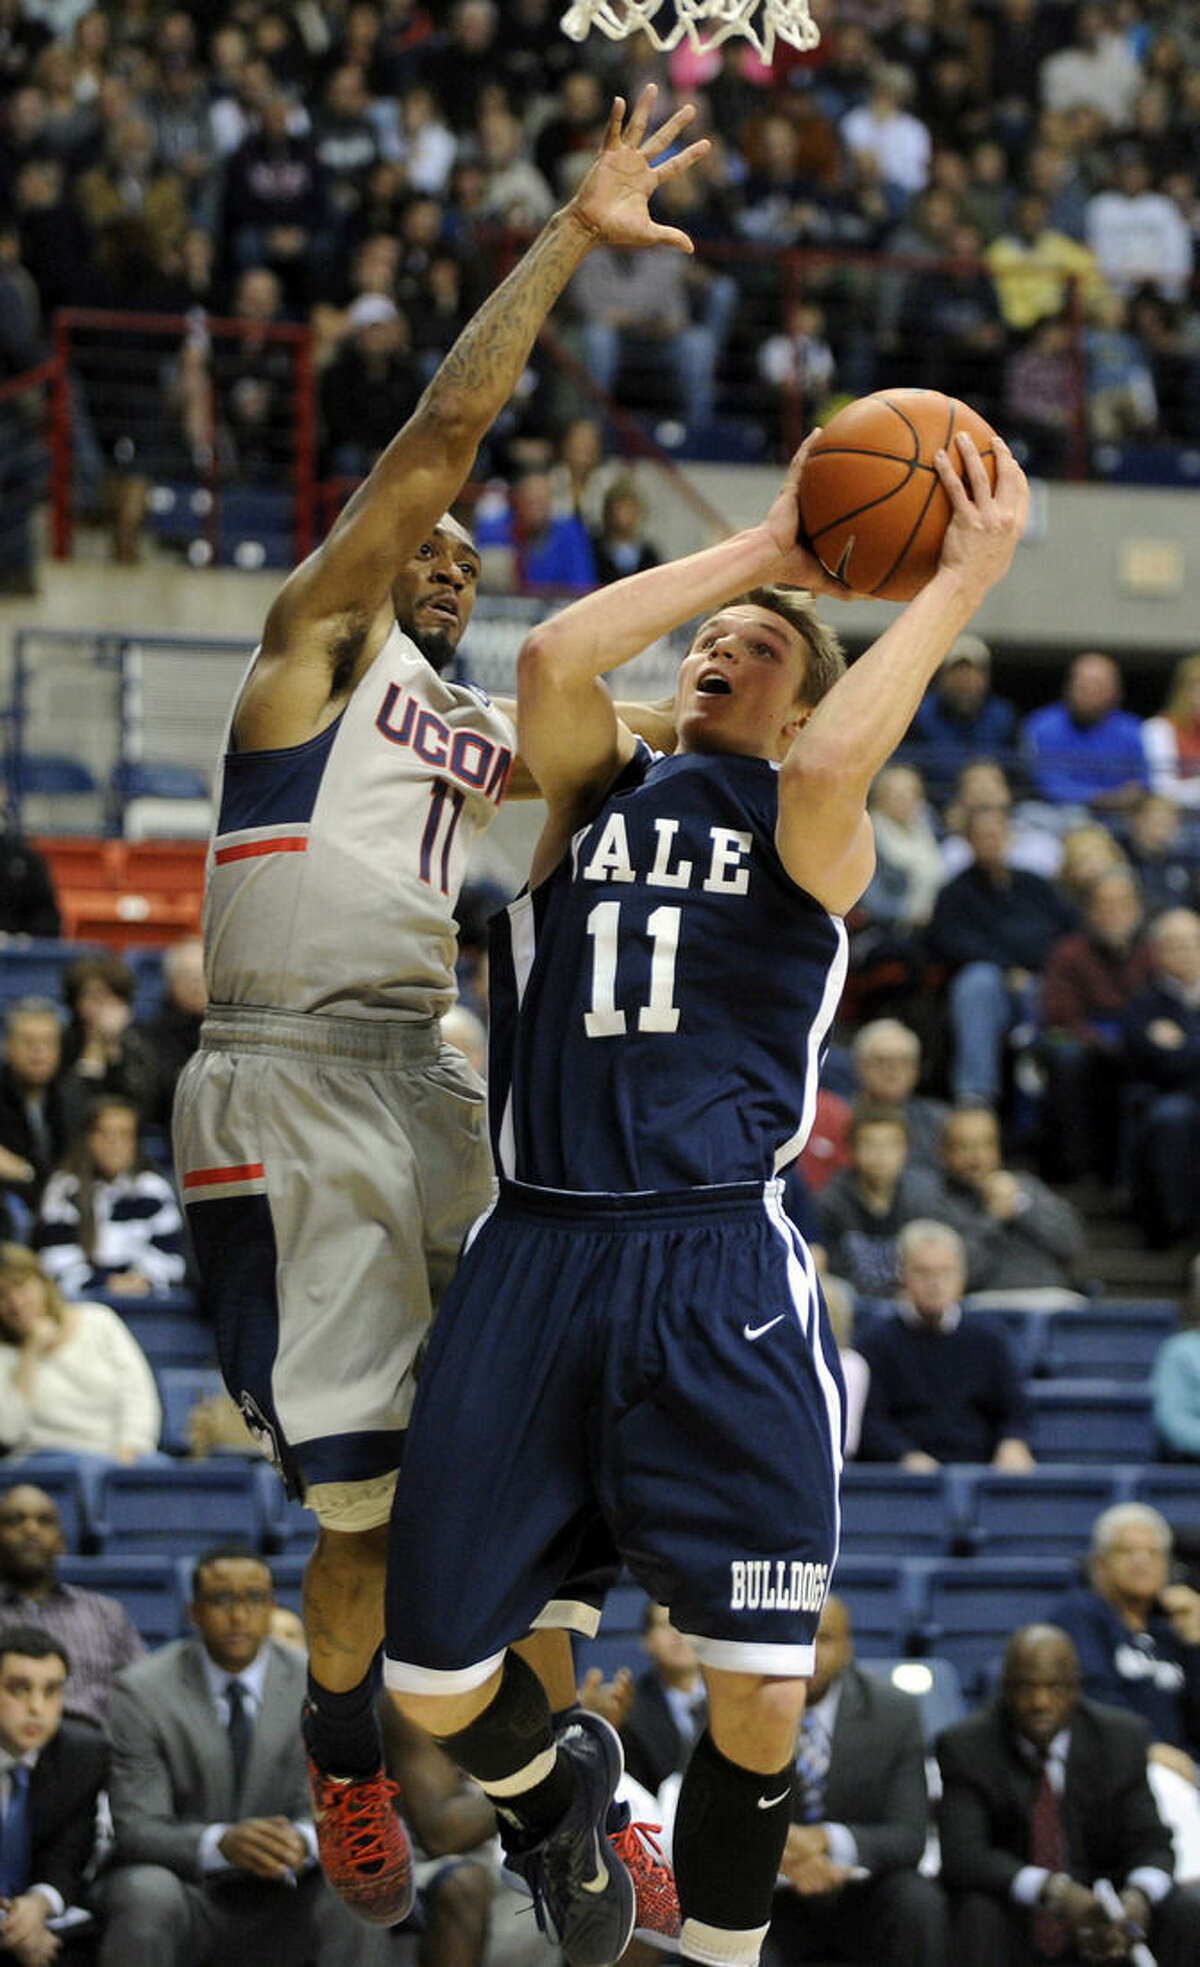 Yale's Makai Mason (11) drives past Connecticut's Ryan Boatright (11) during the first half of an NCAA college basketball game in Storrs, Conn., on Sunday, Dec. 5, 2014. (AP Photo/Fred Beckham)